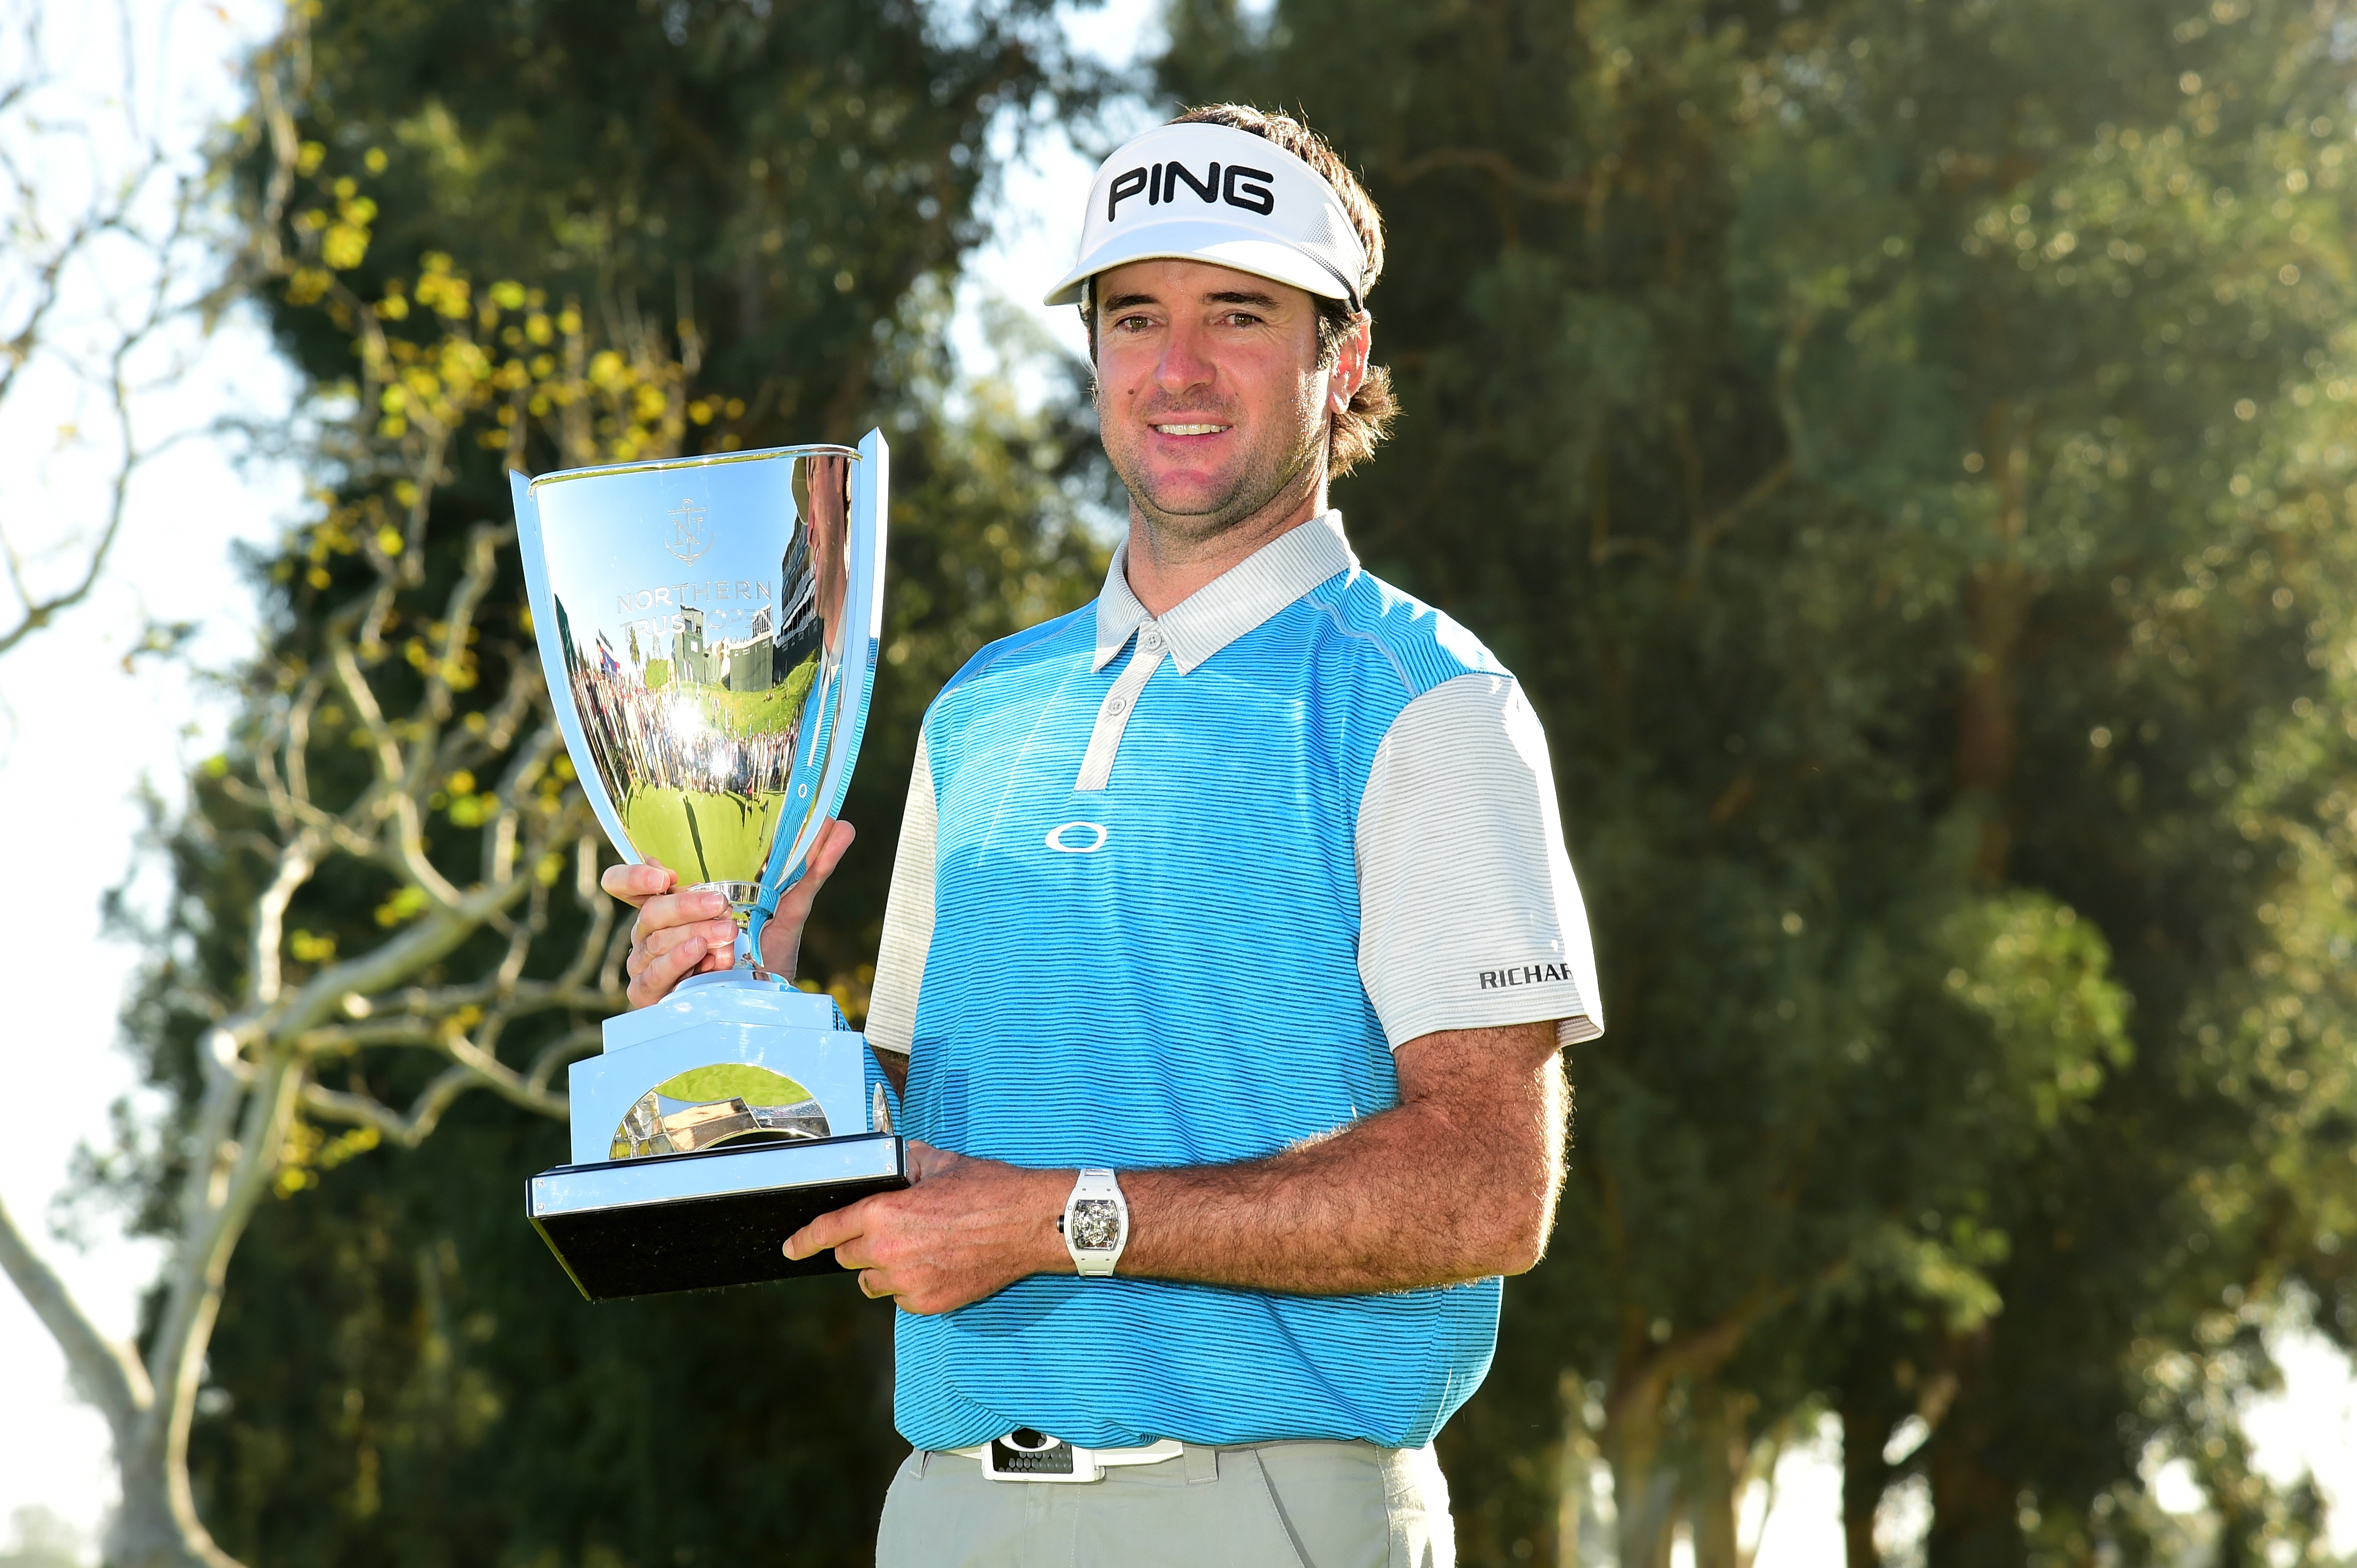 Bubba Watson is a two-time winner of the Genesis Open, winning the event both times when it was named the Northern Trust Open.